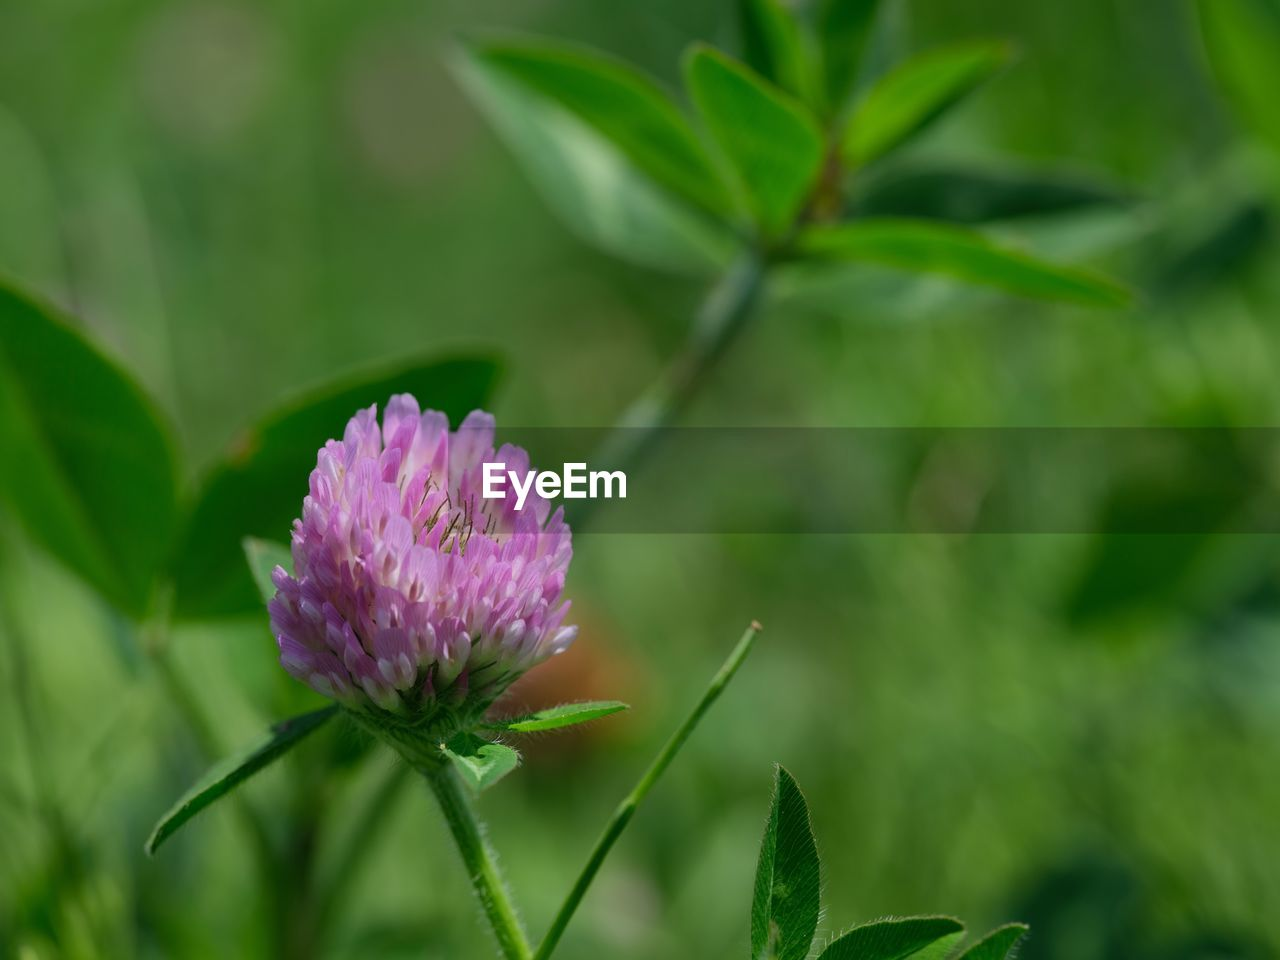 flowering plant, plant, flower, beauty in nature, growth, freshness, leaf, vulnerability, fragility, plant part, flower head, petal, inflorescence, pink color, nature, green color, close-up, purple, no people, day, clover, sepal